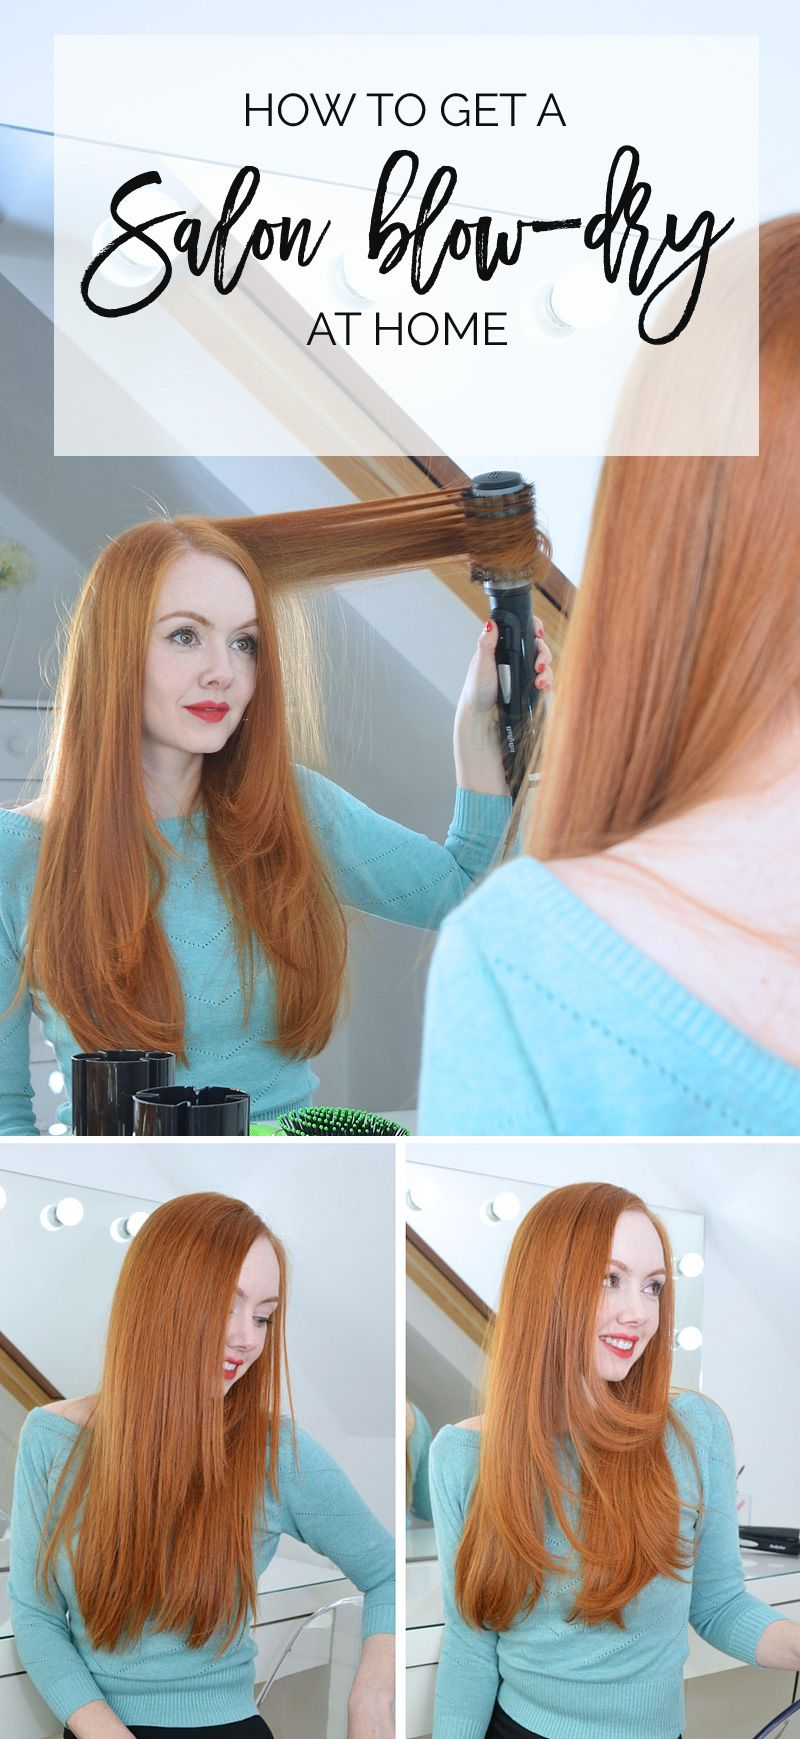 How to get a salon blow dry at home